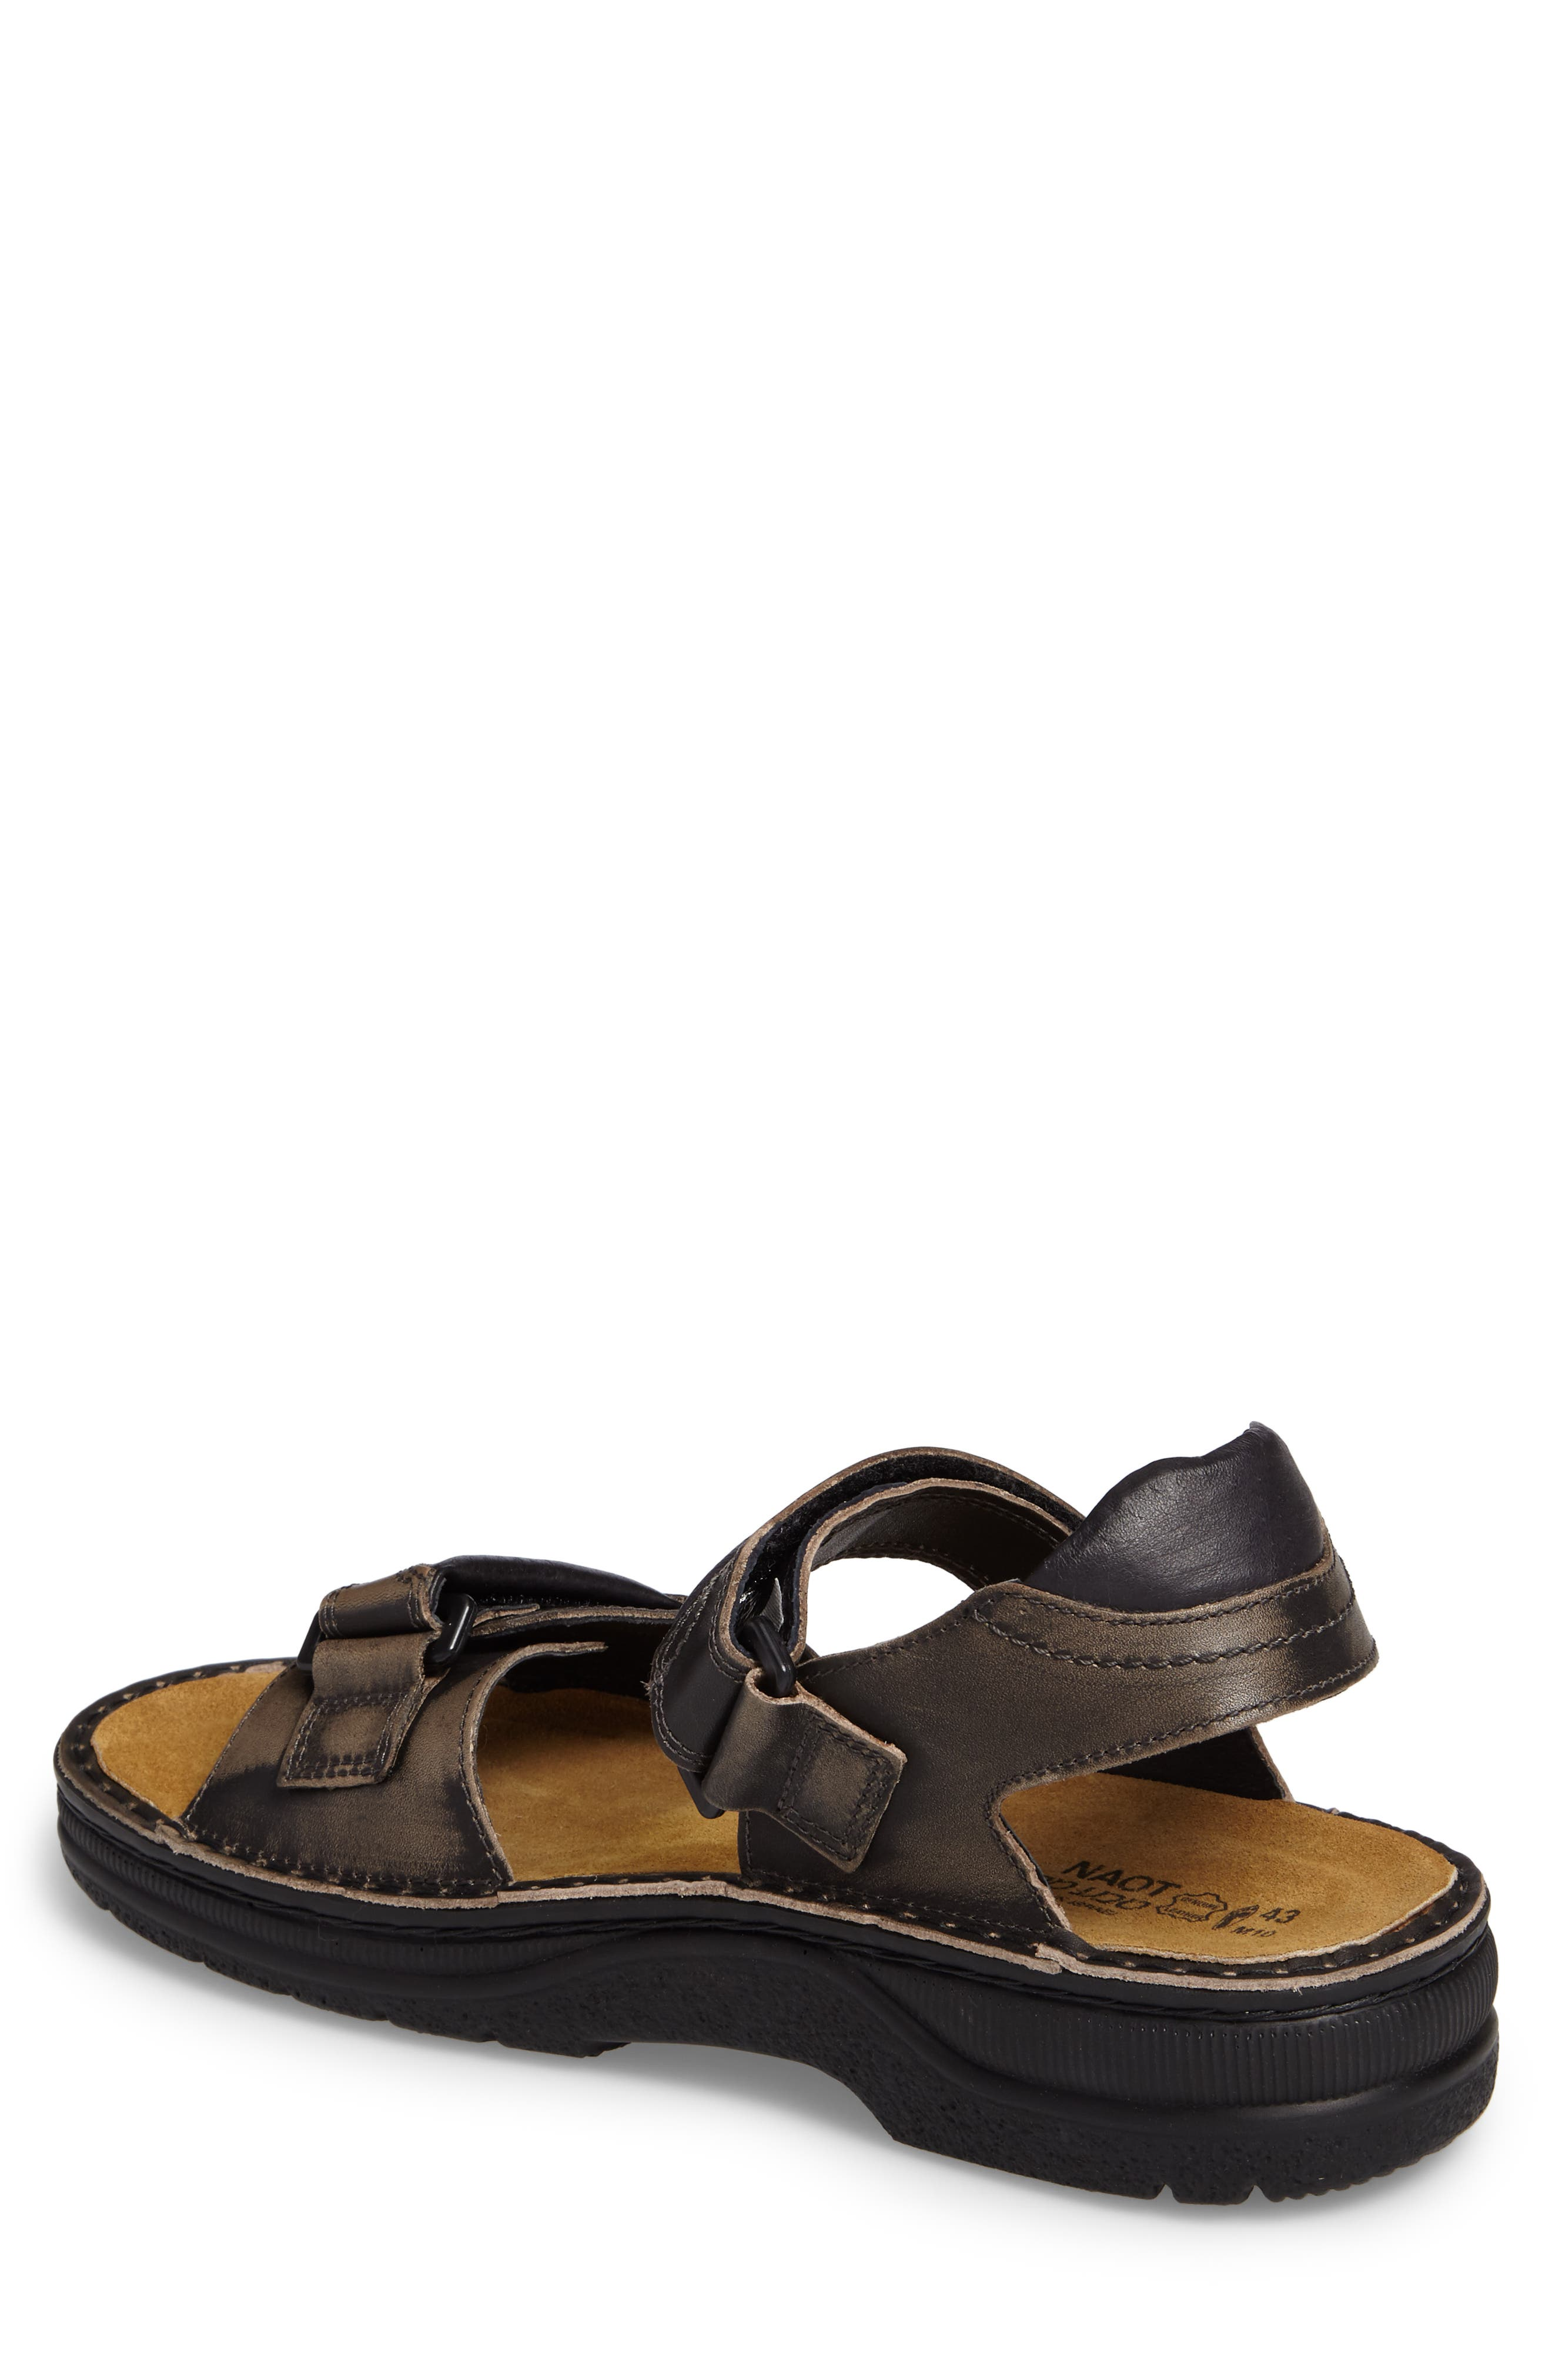 Alternate Image 2  - Naot Lappland Sandal (Men)